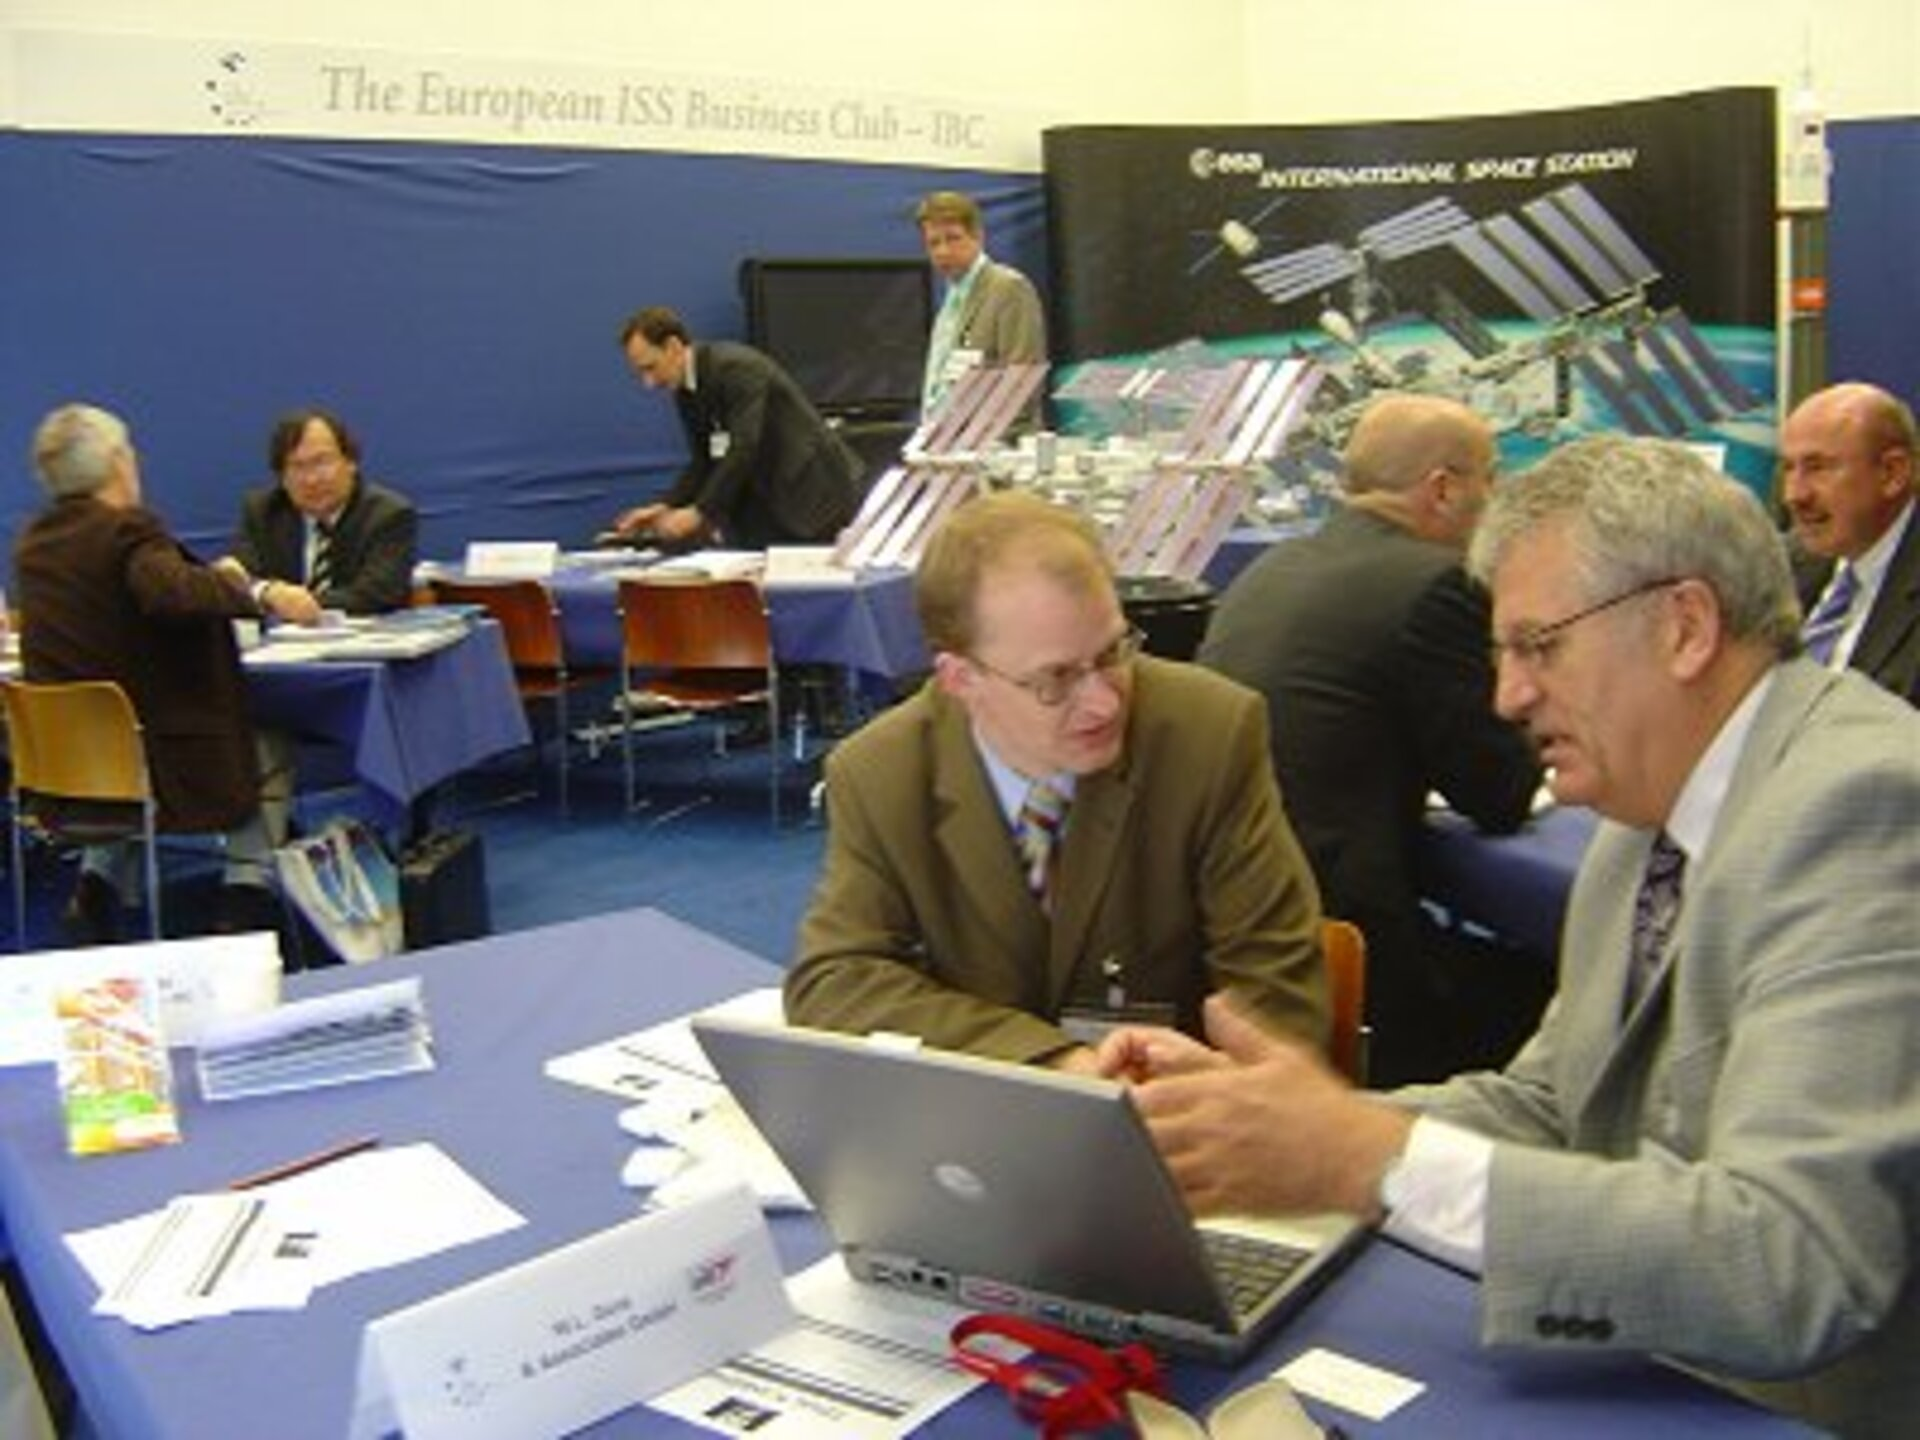 The IBC booth at the Industry Space Days 2006